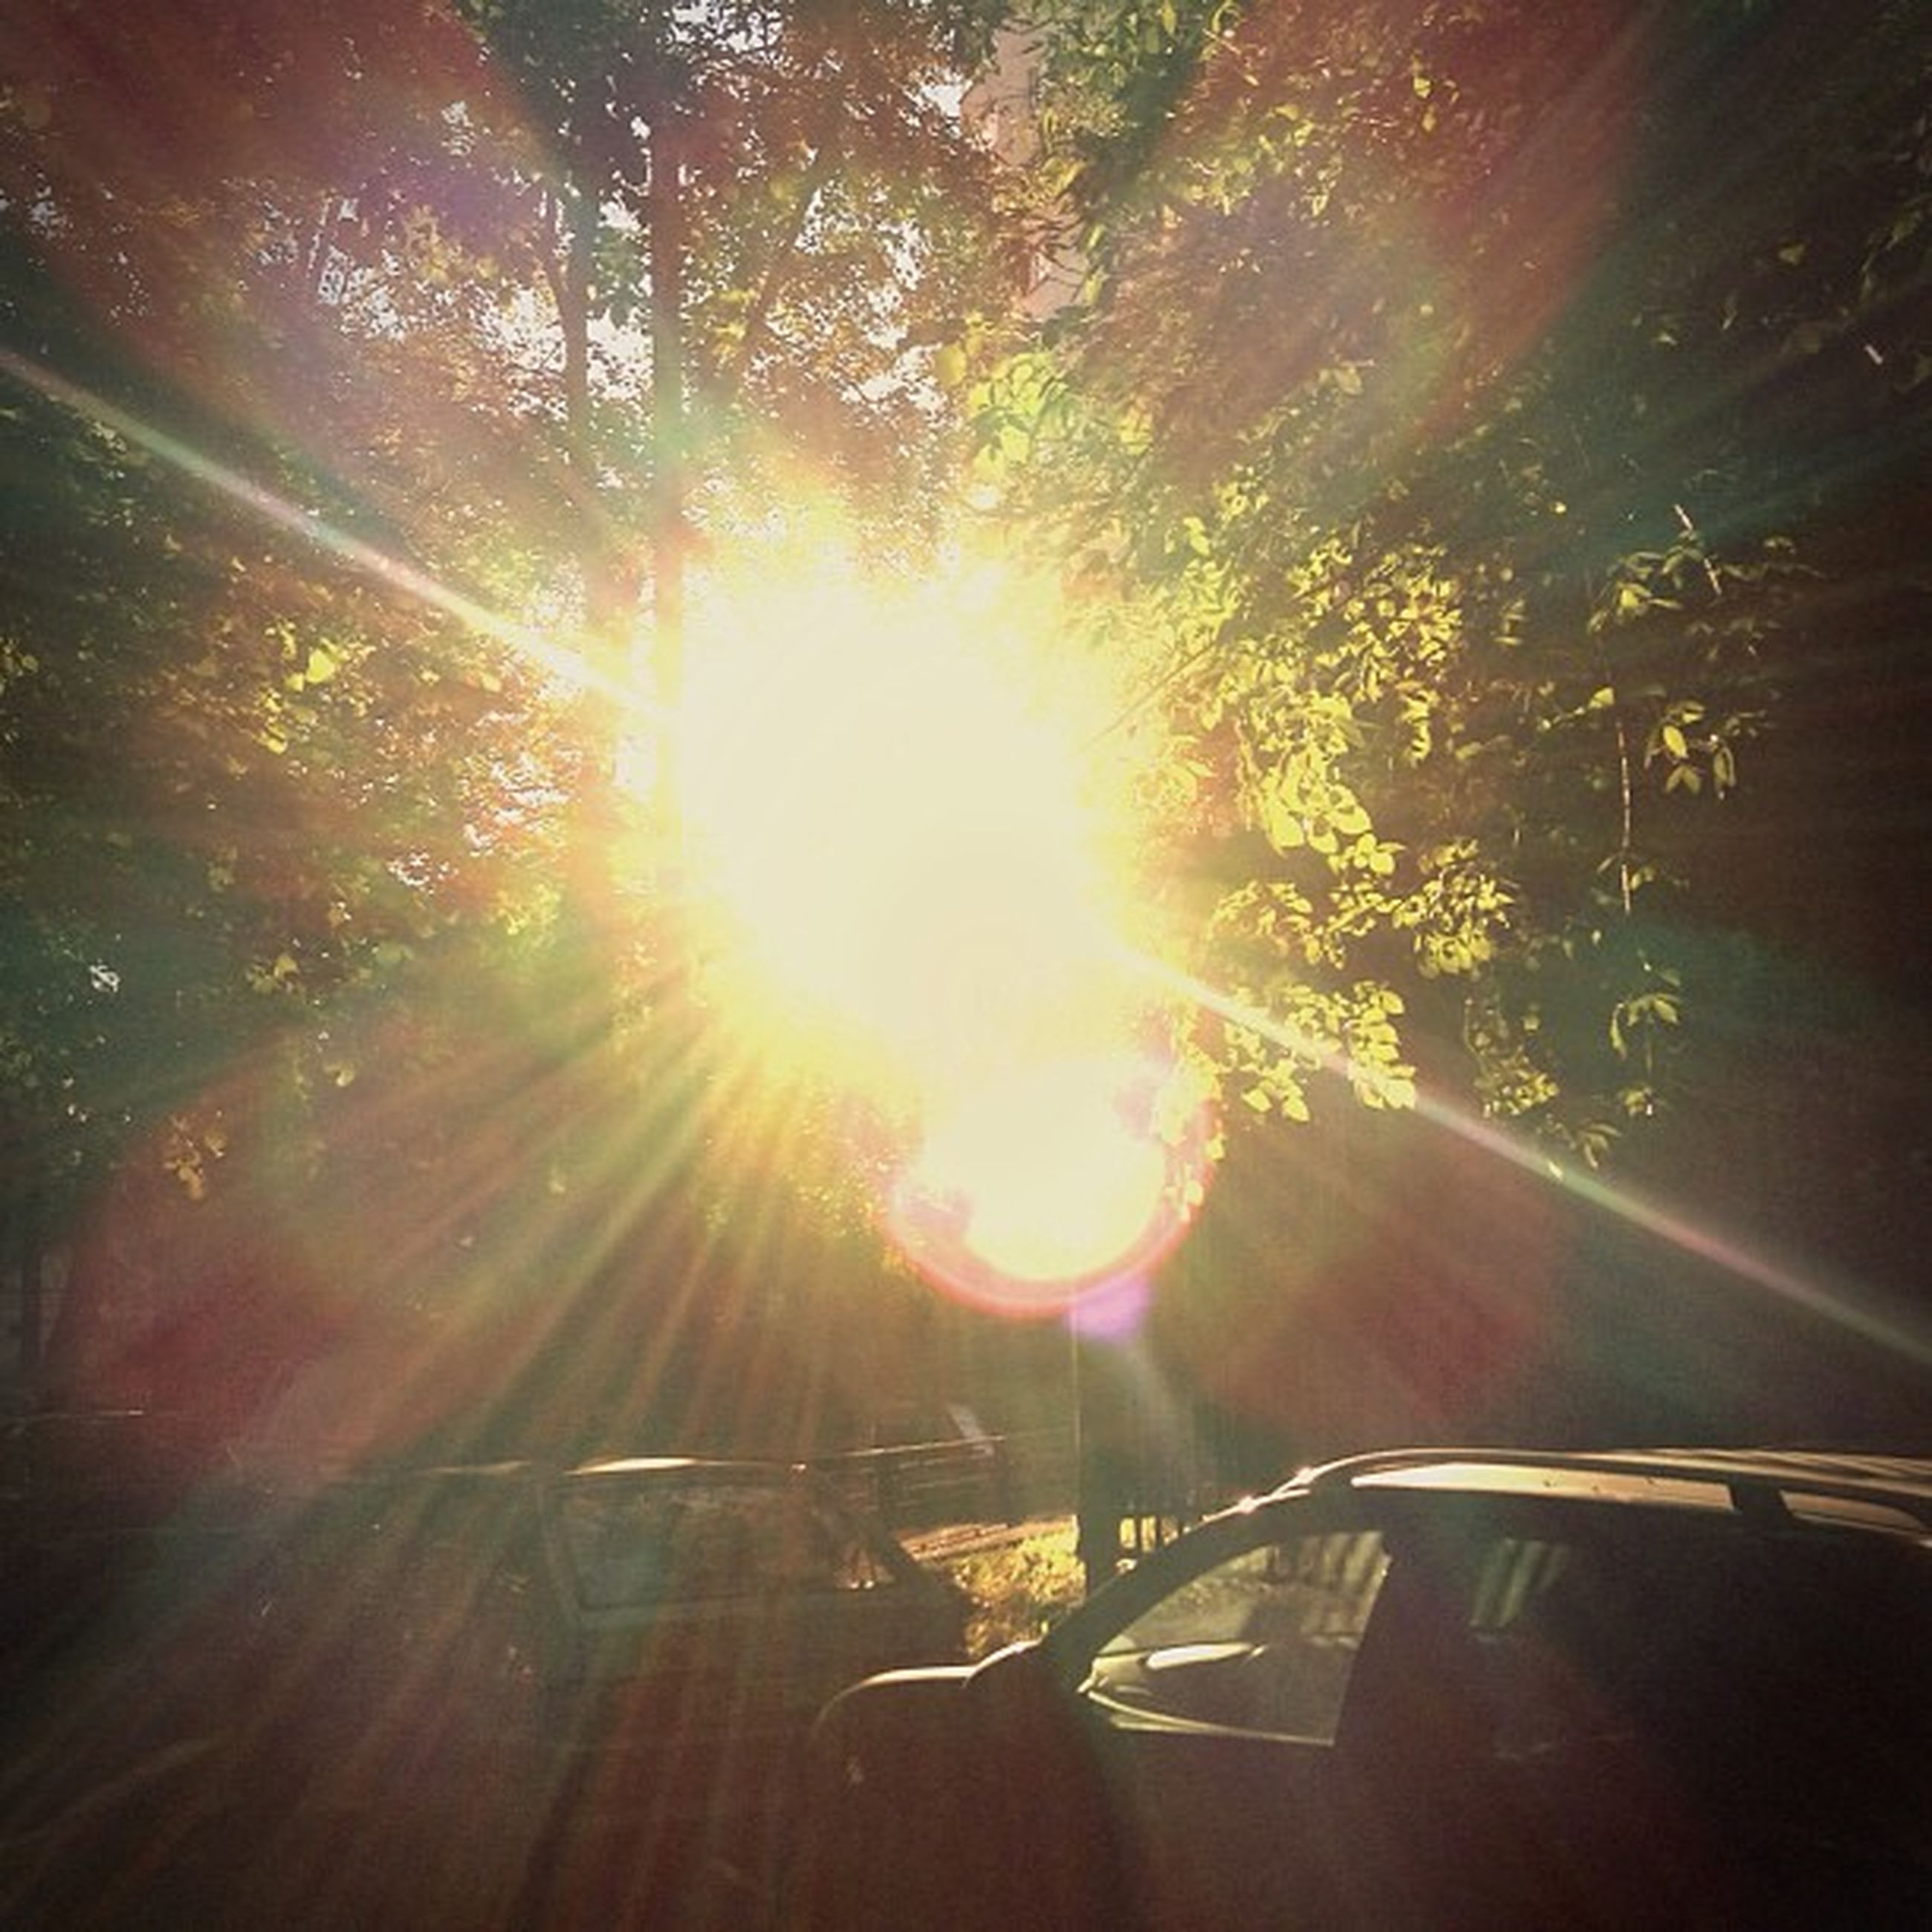 sun, transportation, sunbeam, sunlight, lens flare, tree, car, mode of transport, land vehicle, road, bright, sunny, on the move, nature, street, outdoors, travel, the way forward, no people, shiny